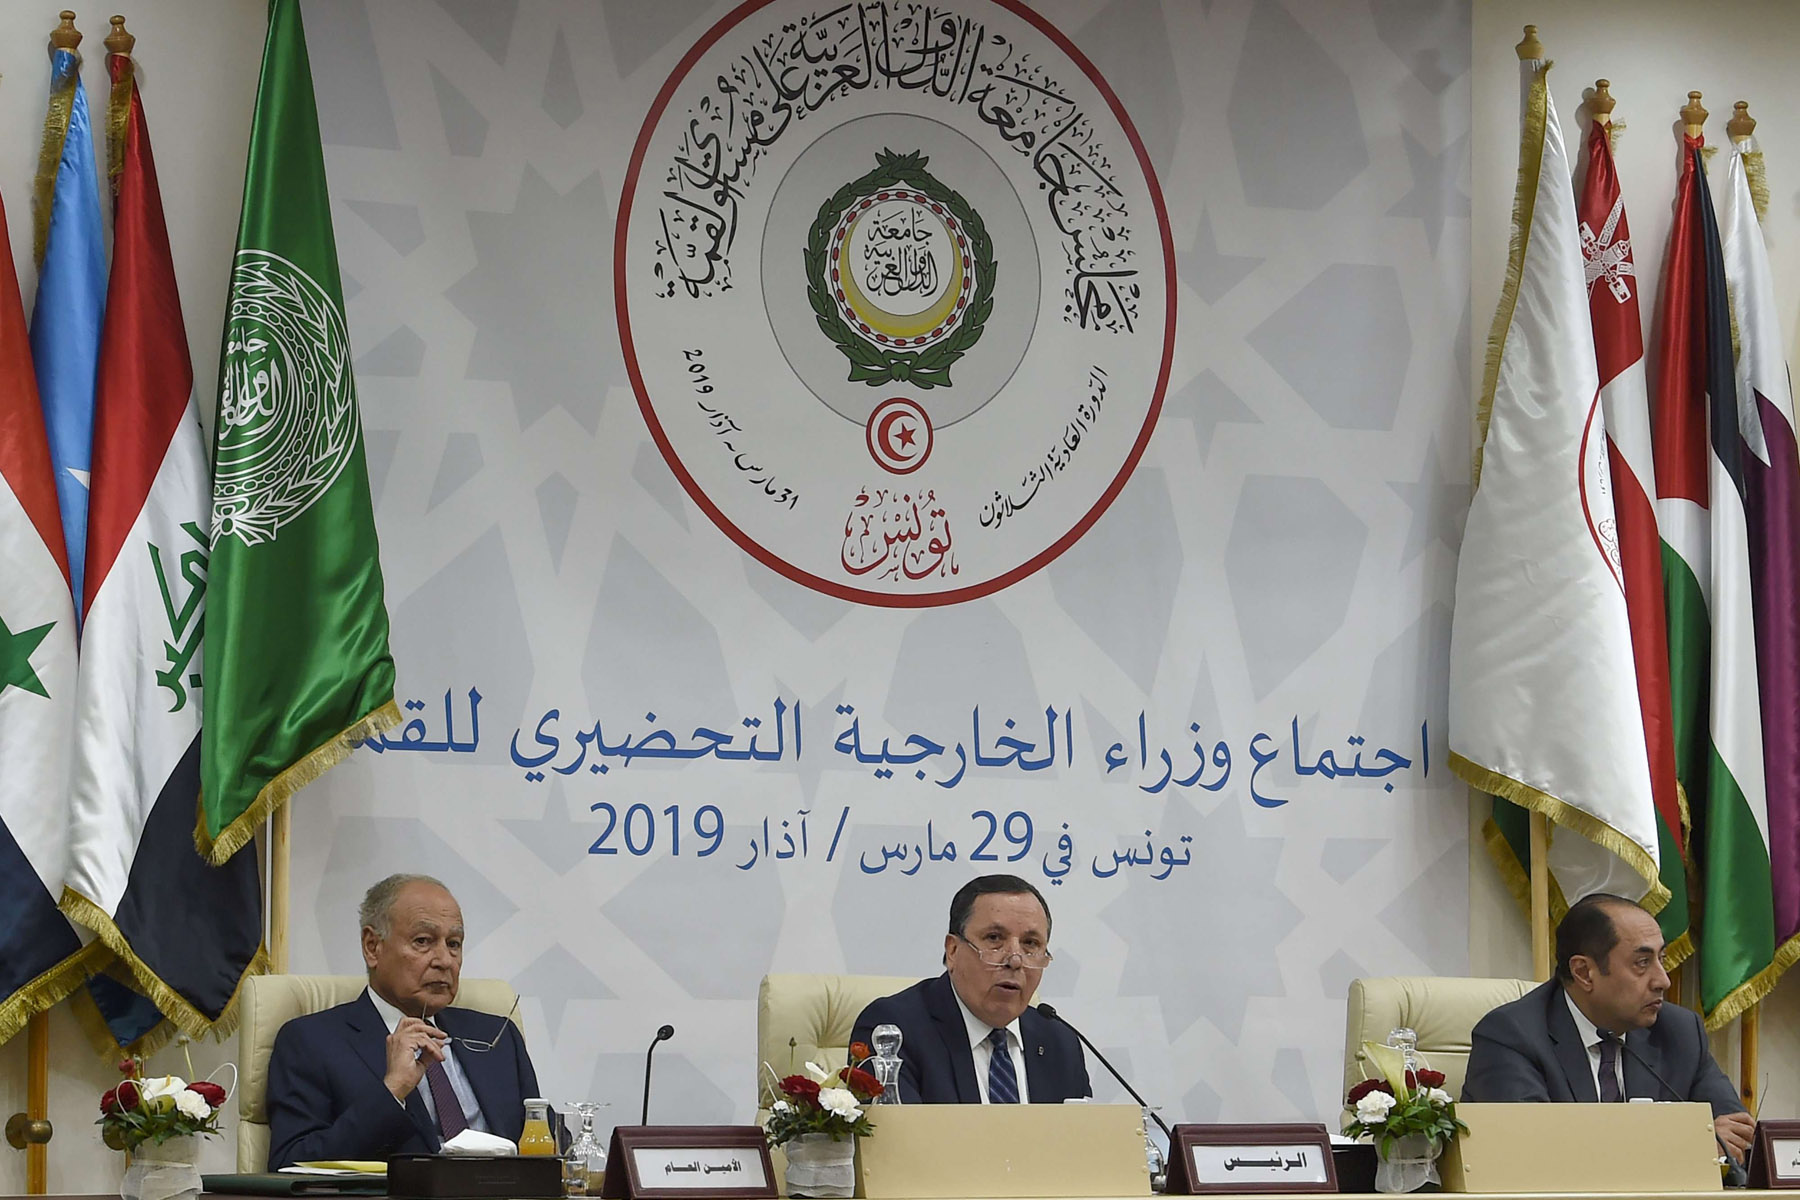 Seeking solutions. Arab League Secretary-General Ahmed Aboul Gheit (L), Tunisia's Foreign Minister Khemaies Jhinaoui (C) and Assistant Secretary-General Ambassador Hossam Zaki attend a preparatory meeting for foreign ministers in Tunis, March 29.              (AFP)